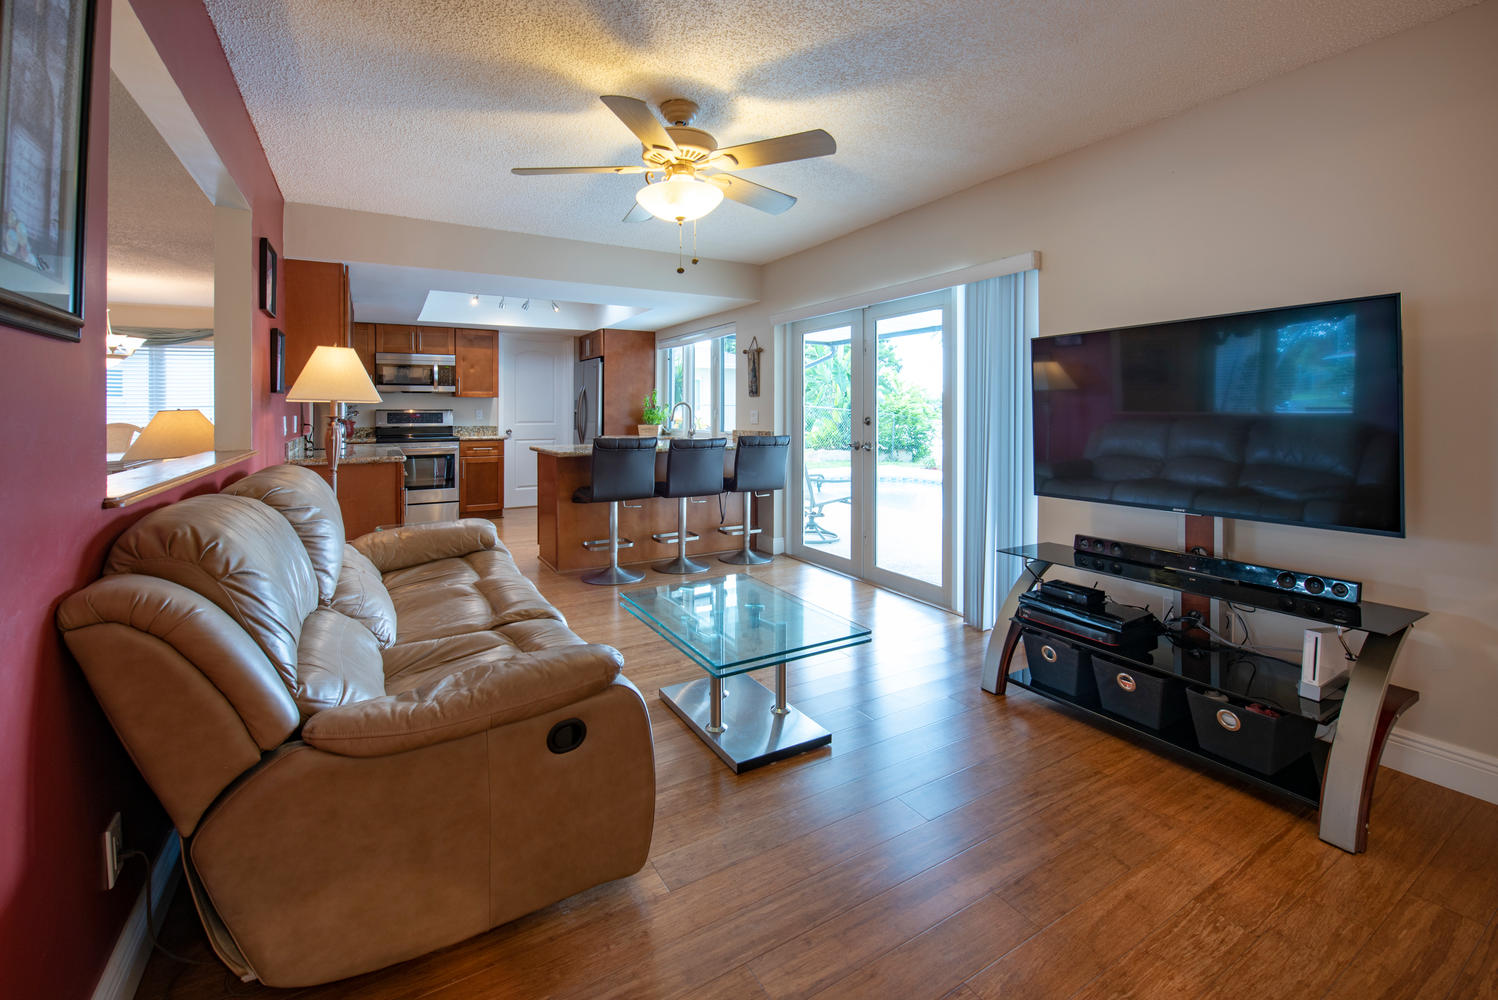 9311 NW 20th Ct Pembroke Pines-large-013-15-Family RoomKitchen-1499x1000-72dpi.jpg